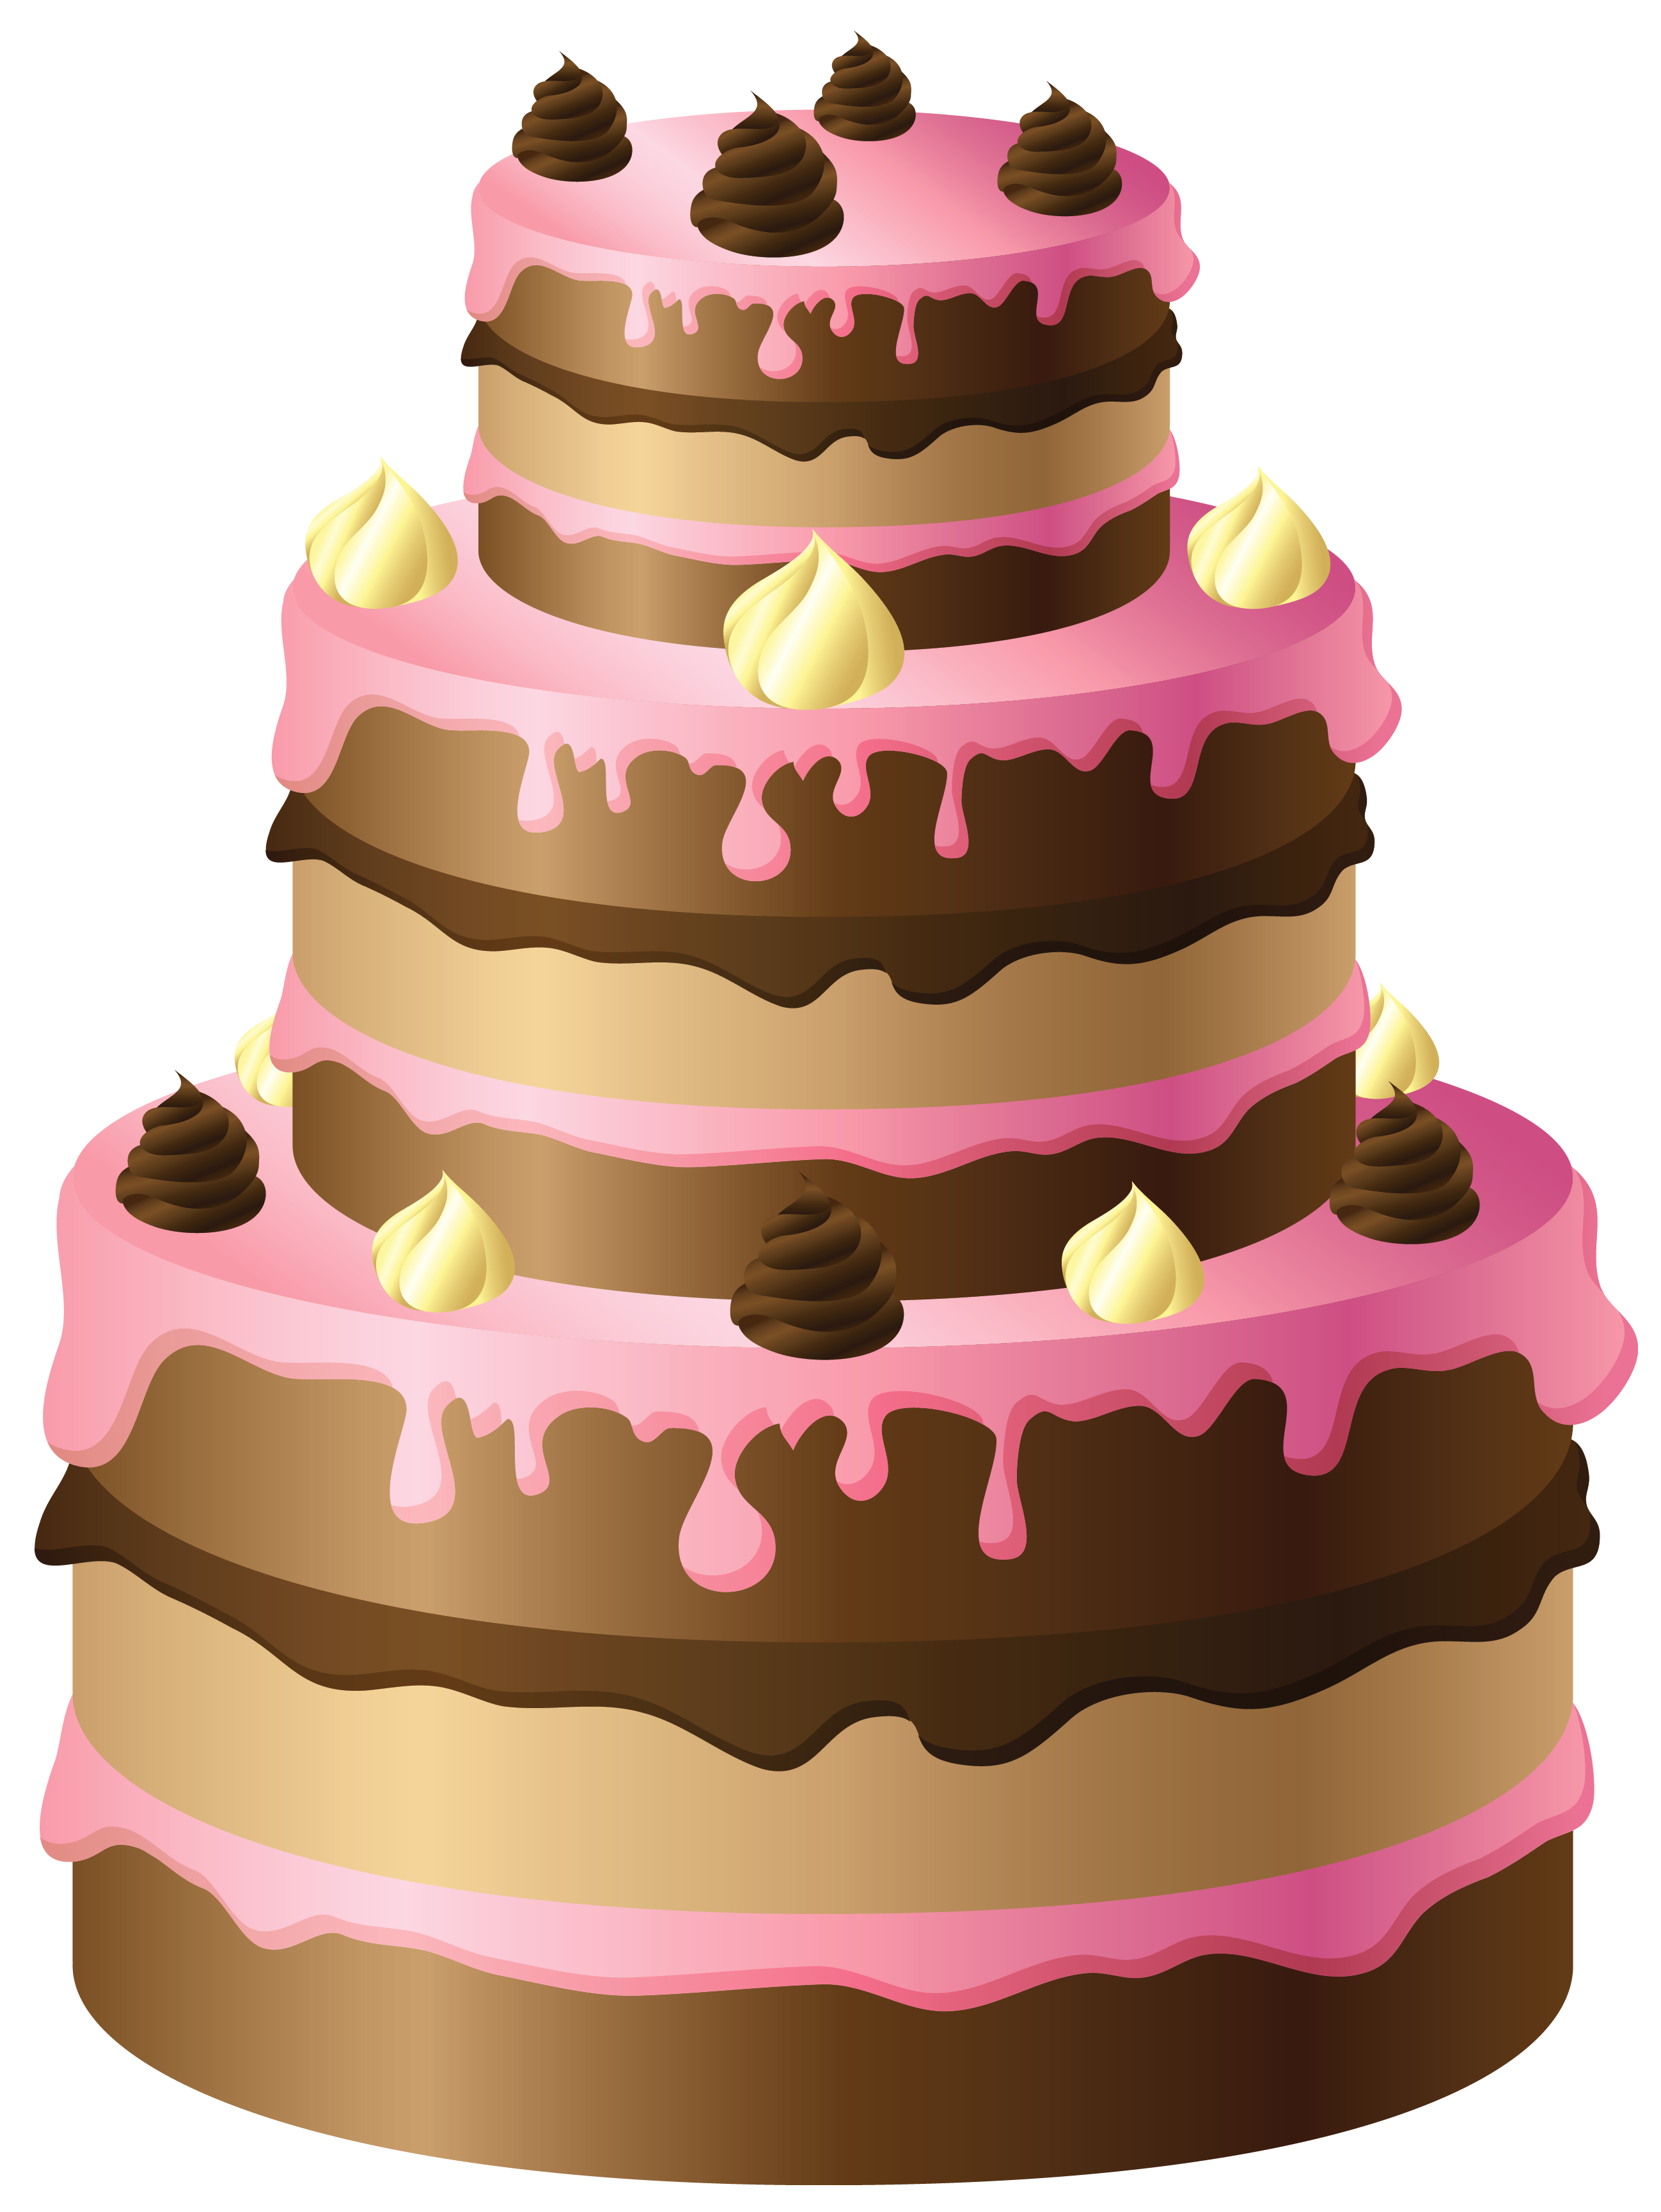 http://www.uplooder.net/img/image/87/25b9cb7338f718cda379c896b696a19c/Large_Chocolate_Cake_with_Pink_Cream_PNG_Clipart.png